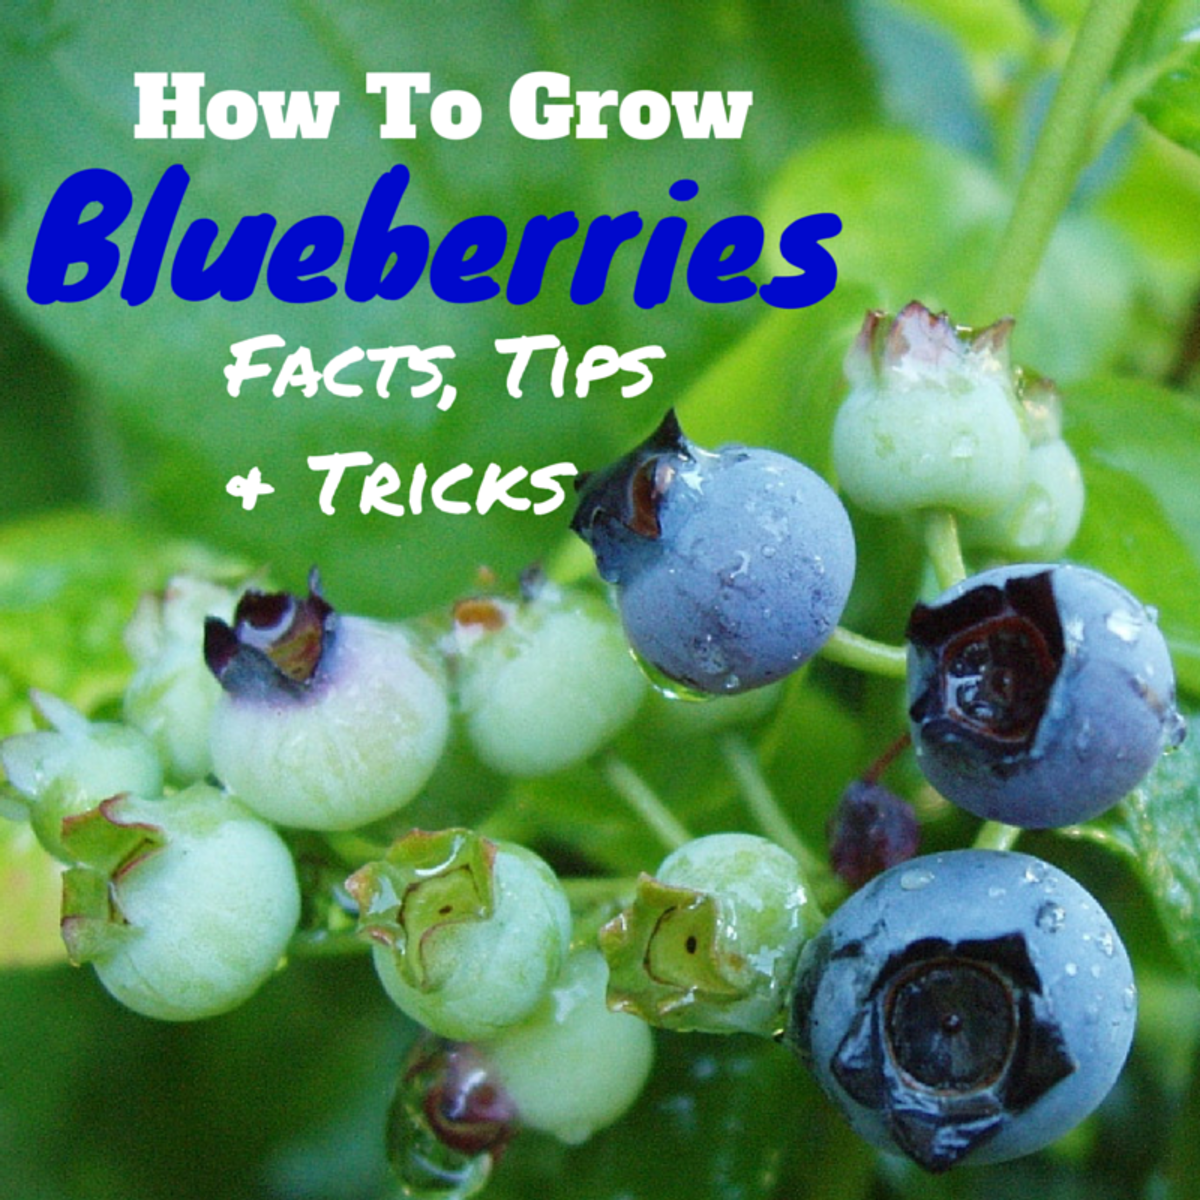 Facts, Tips, and Tricks to Growing Blueberries